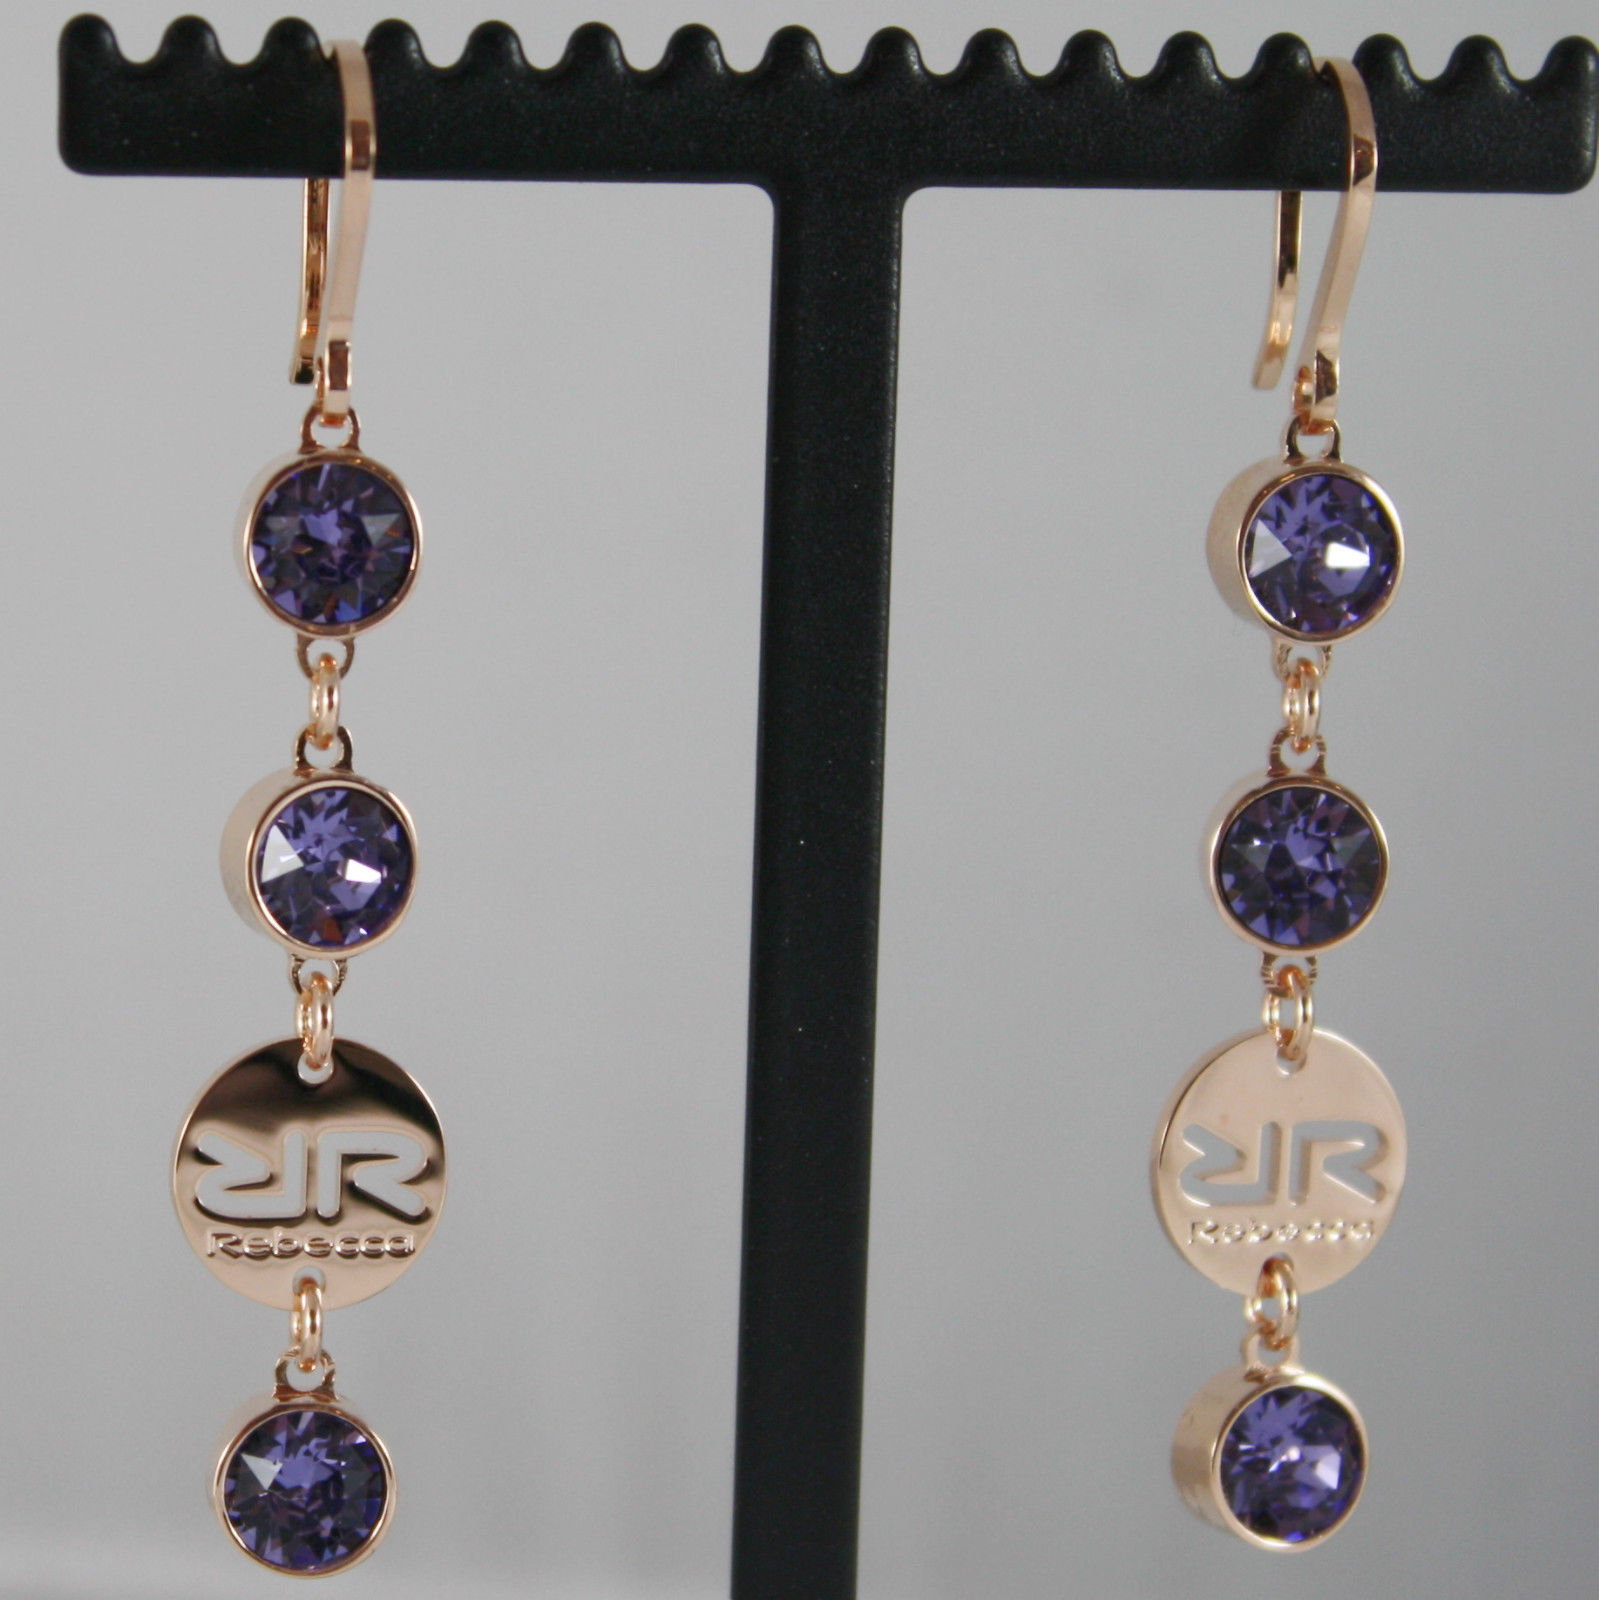 ROSE BRONZE REBECCA PENDANT EARRINGS WITH PURPLE CRYSTAL CT 6.00 MADE IN ITALY